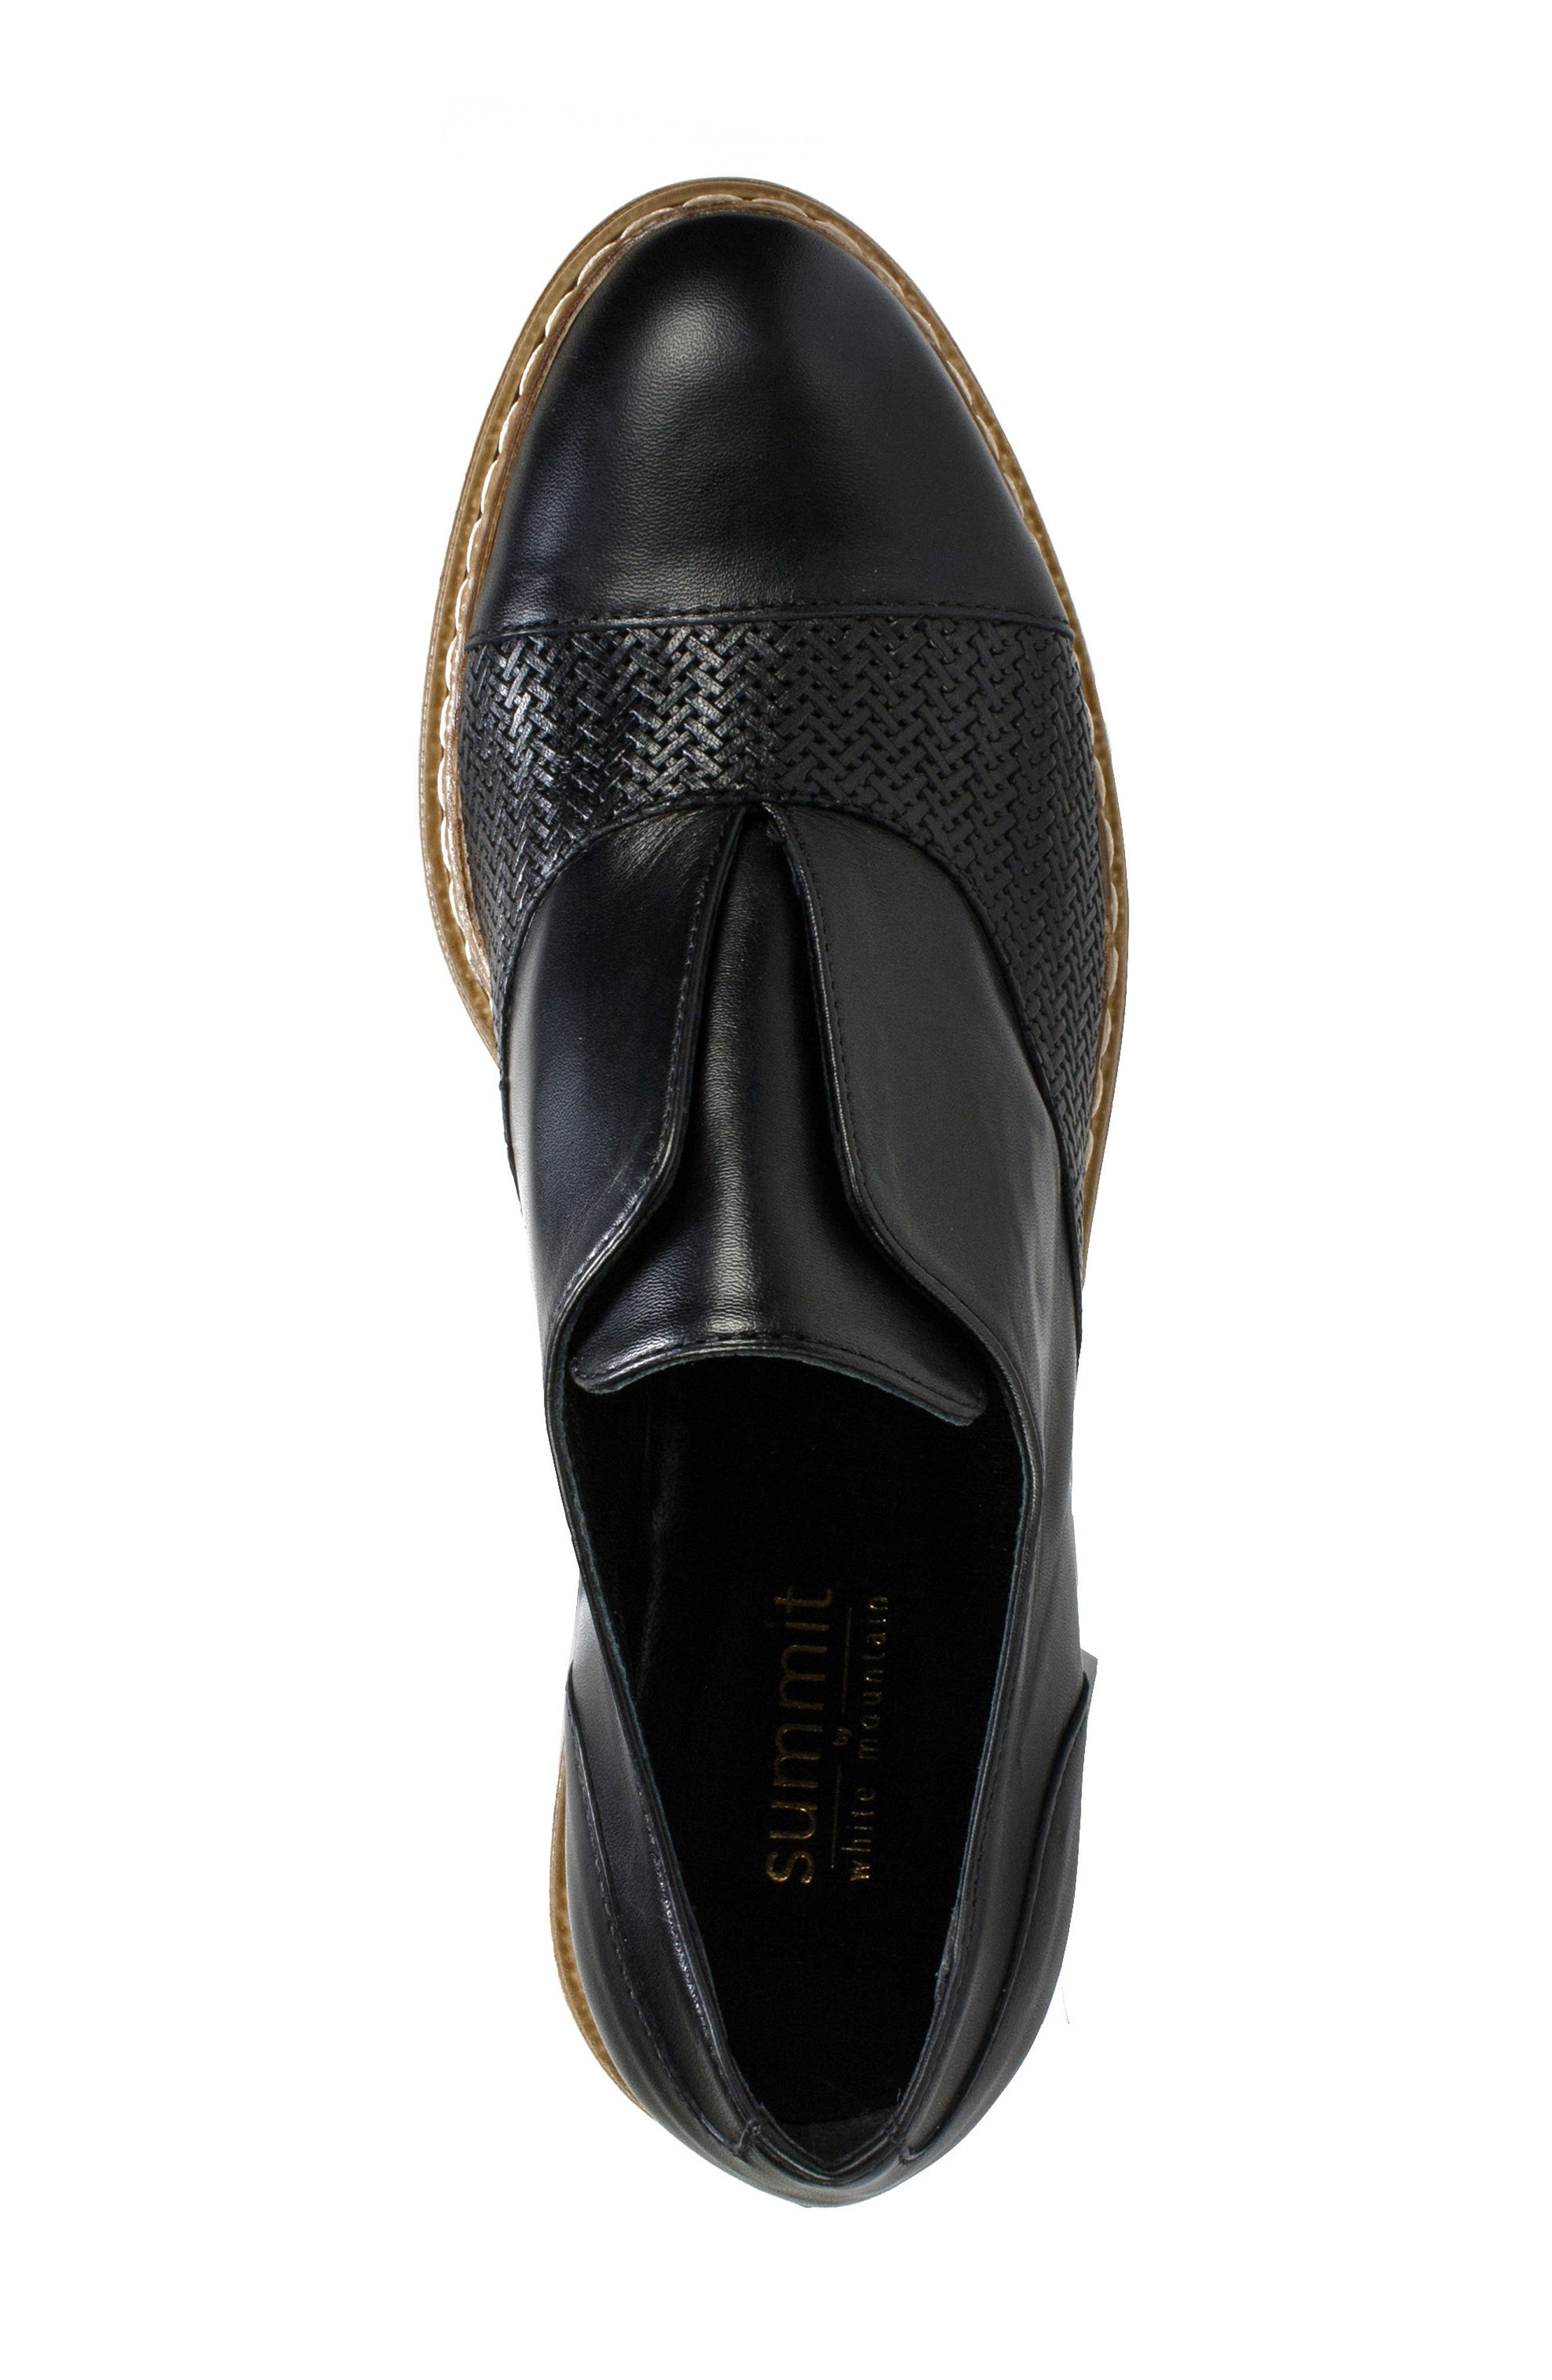 Bliss Loafer,                             Alternate thumbnail 5, color,                             Black Leather